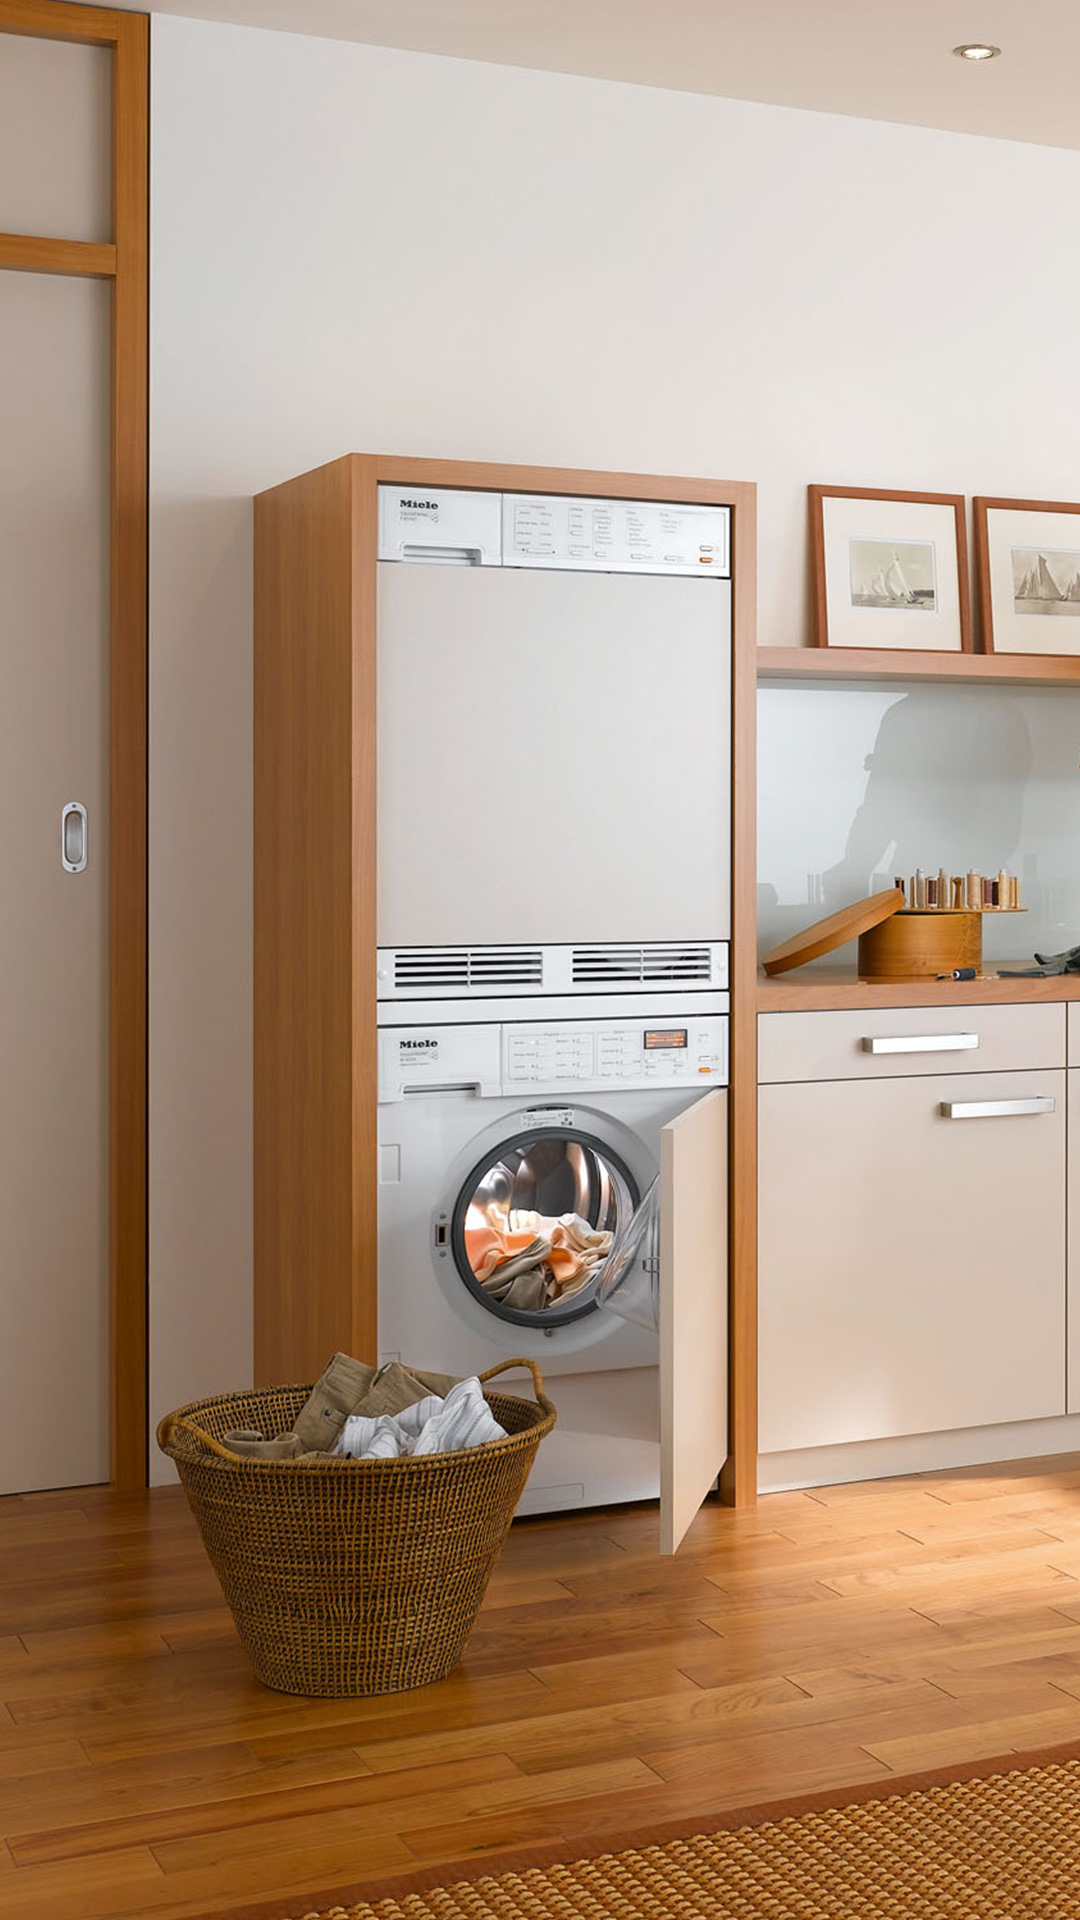 Miele Luxury Washing and Drying